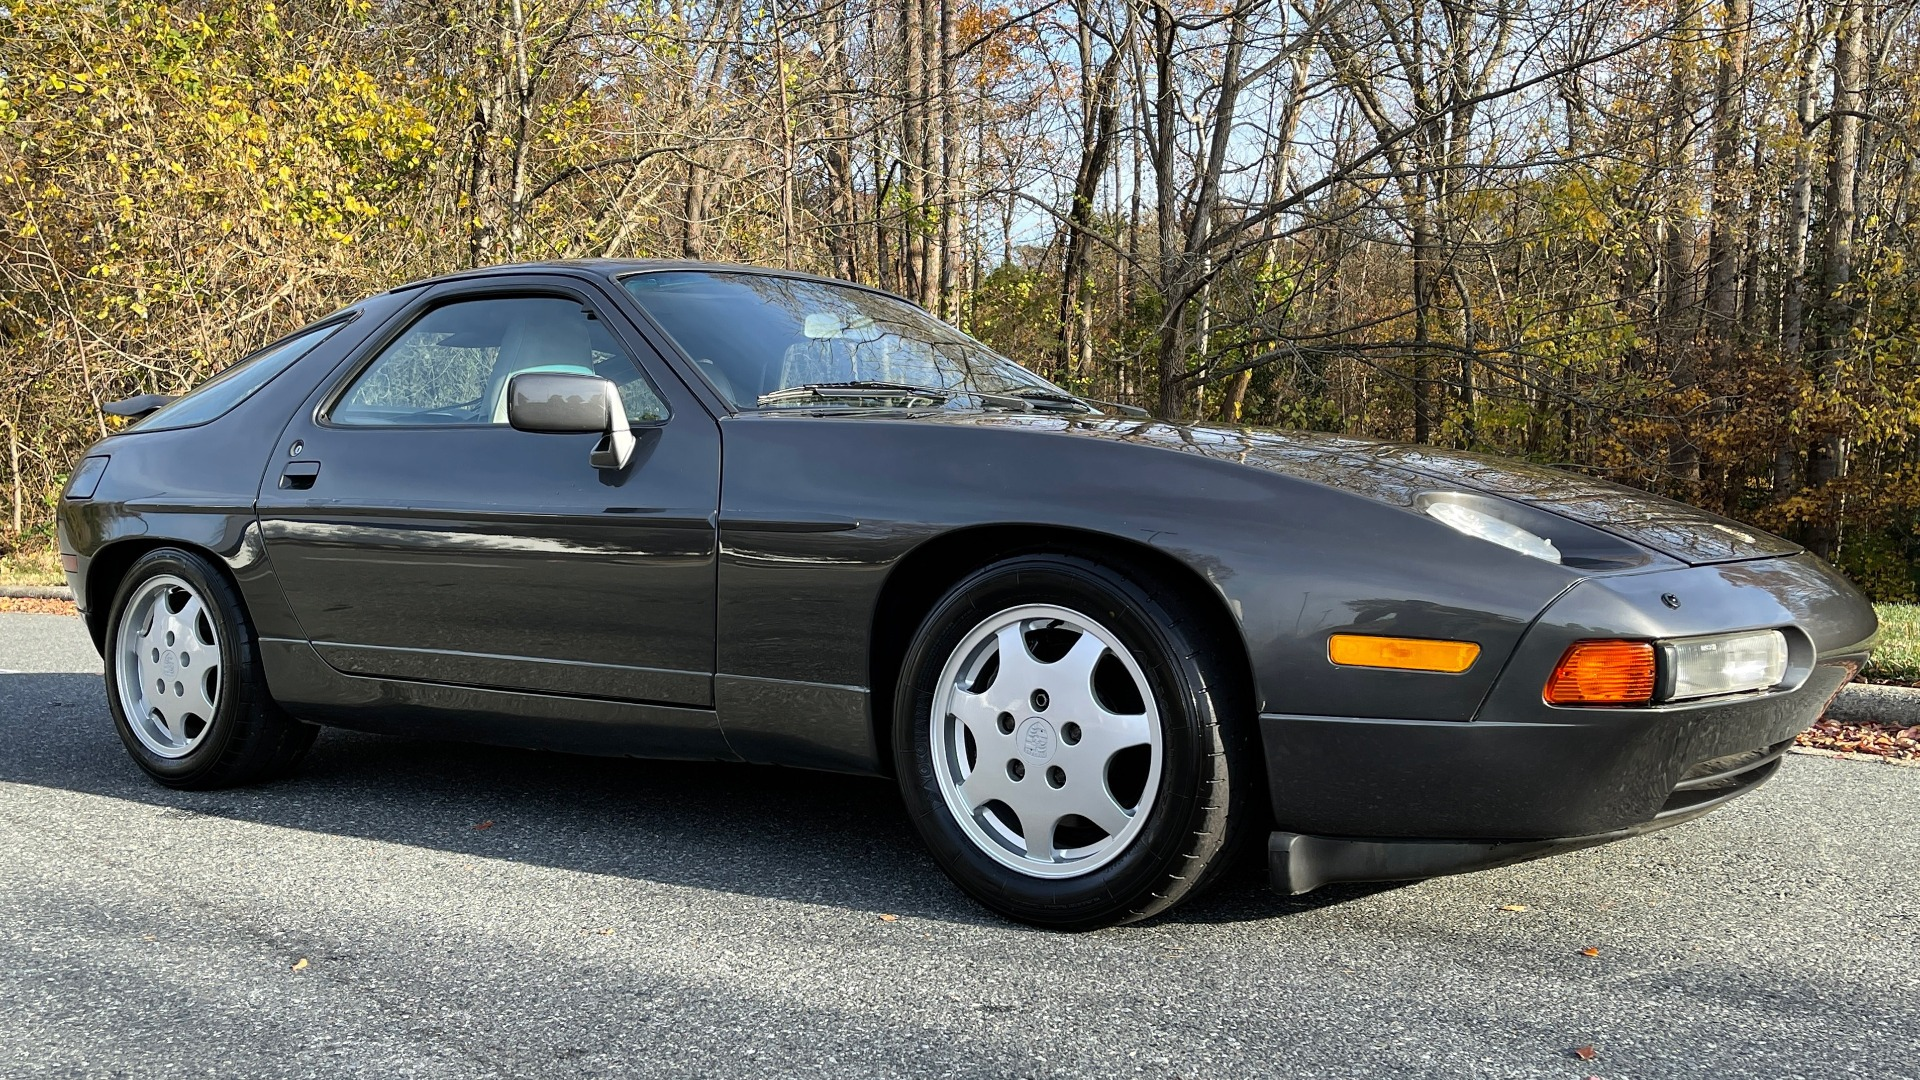 Used 1990 Porsche 928 GT COUPE / 5.0L V8 / 5-SPD MANUAL / LOW MILES for sale $43,999 at Formula Imports in Charlotte NC 28227 5